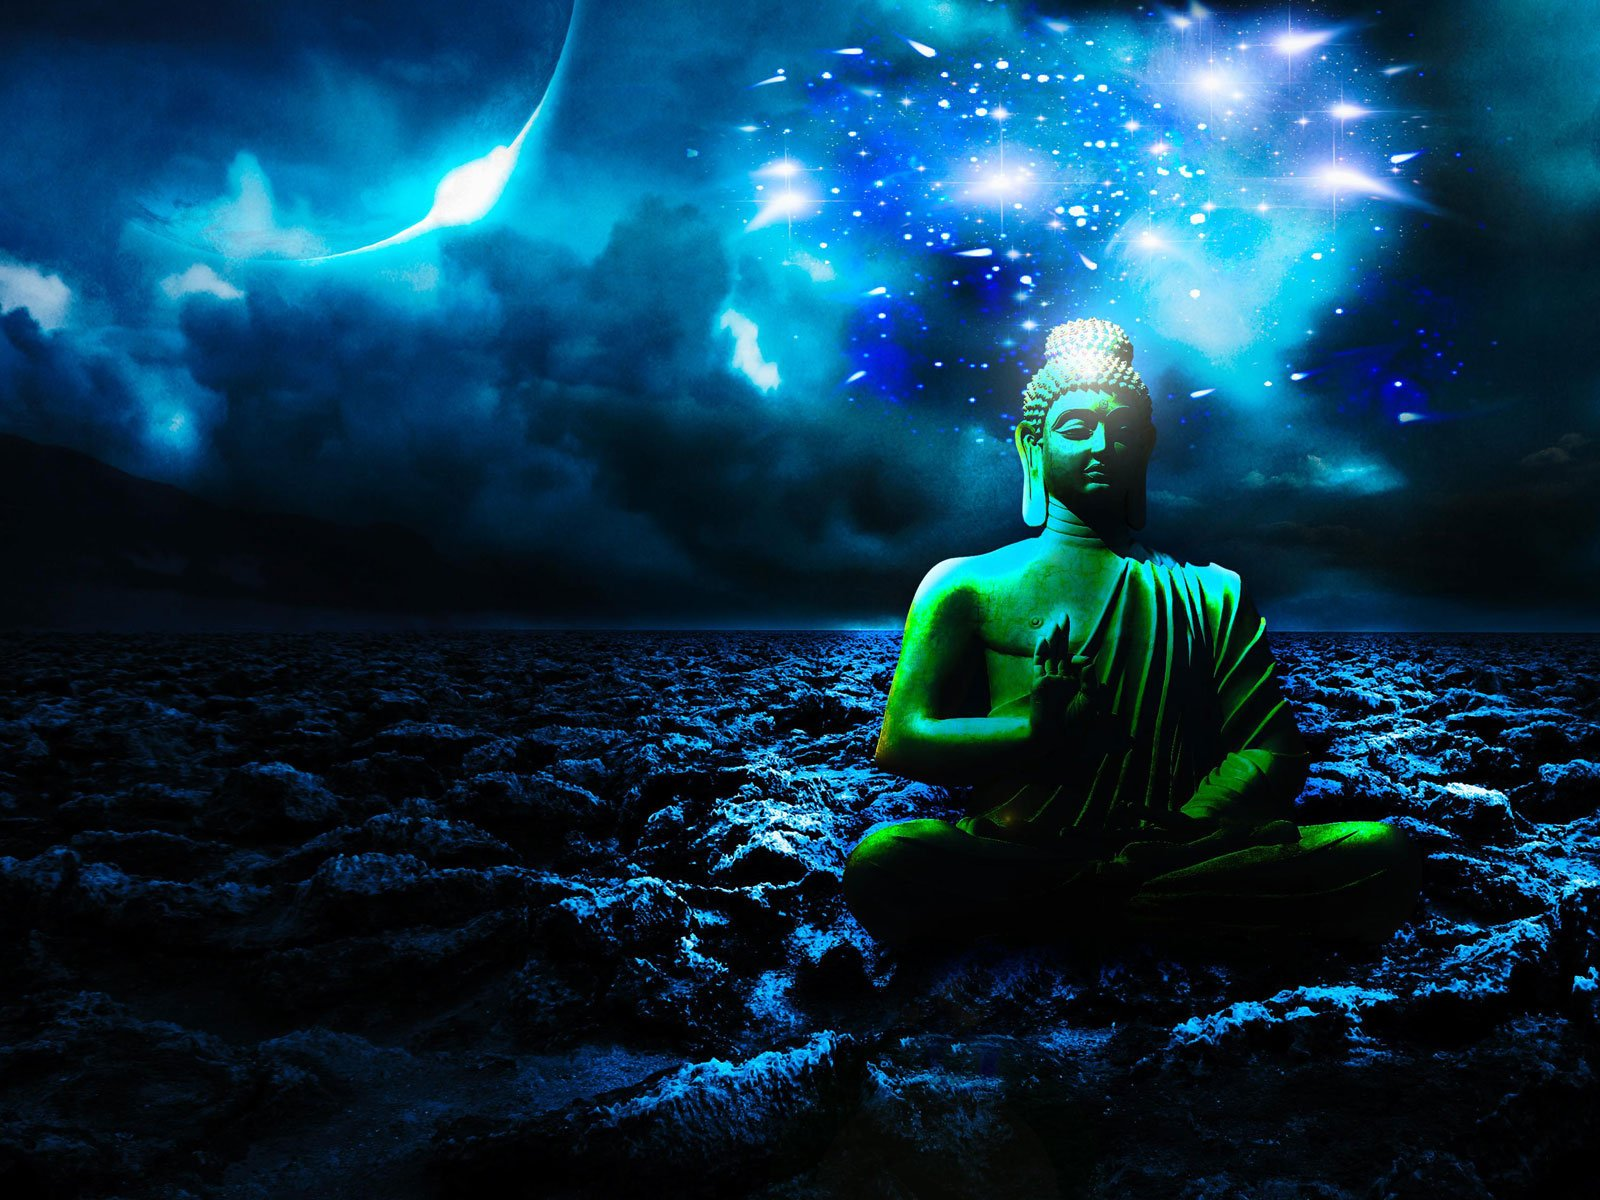 Buddha Meditation Wallpapers Images Download 1600x1200